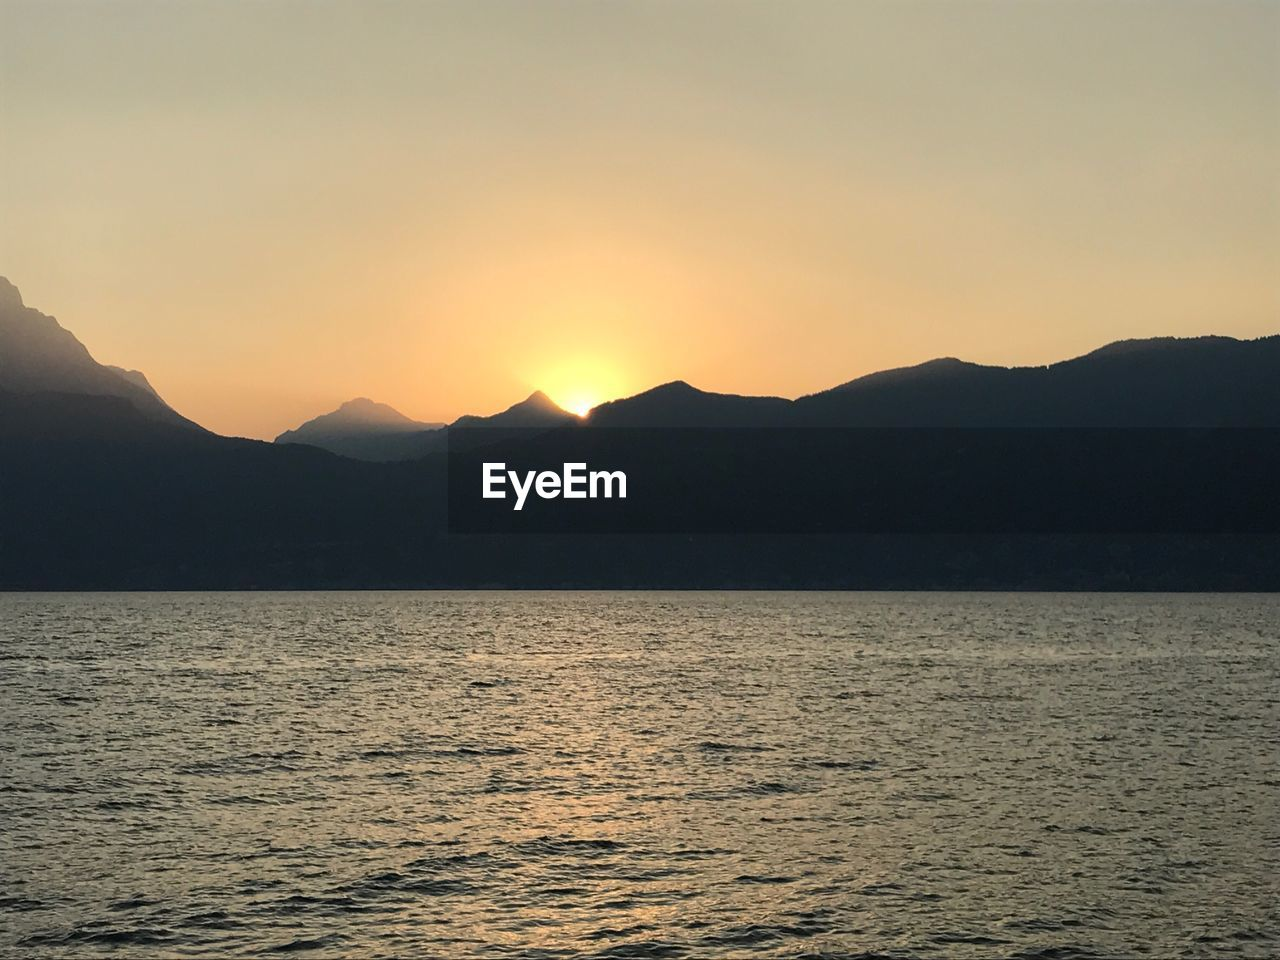 mountain, sunset, nature, beauty in nature, silhouette, tranquility, scenics, tranquil scene, water, mountain range, sea, no people, waterfront, outdoors, sky, clear sky, scenery, day